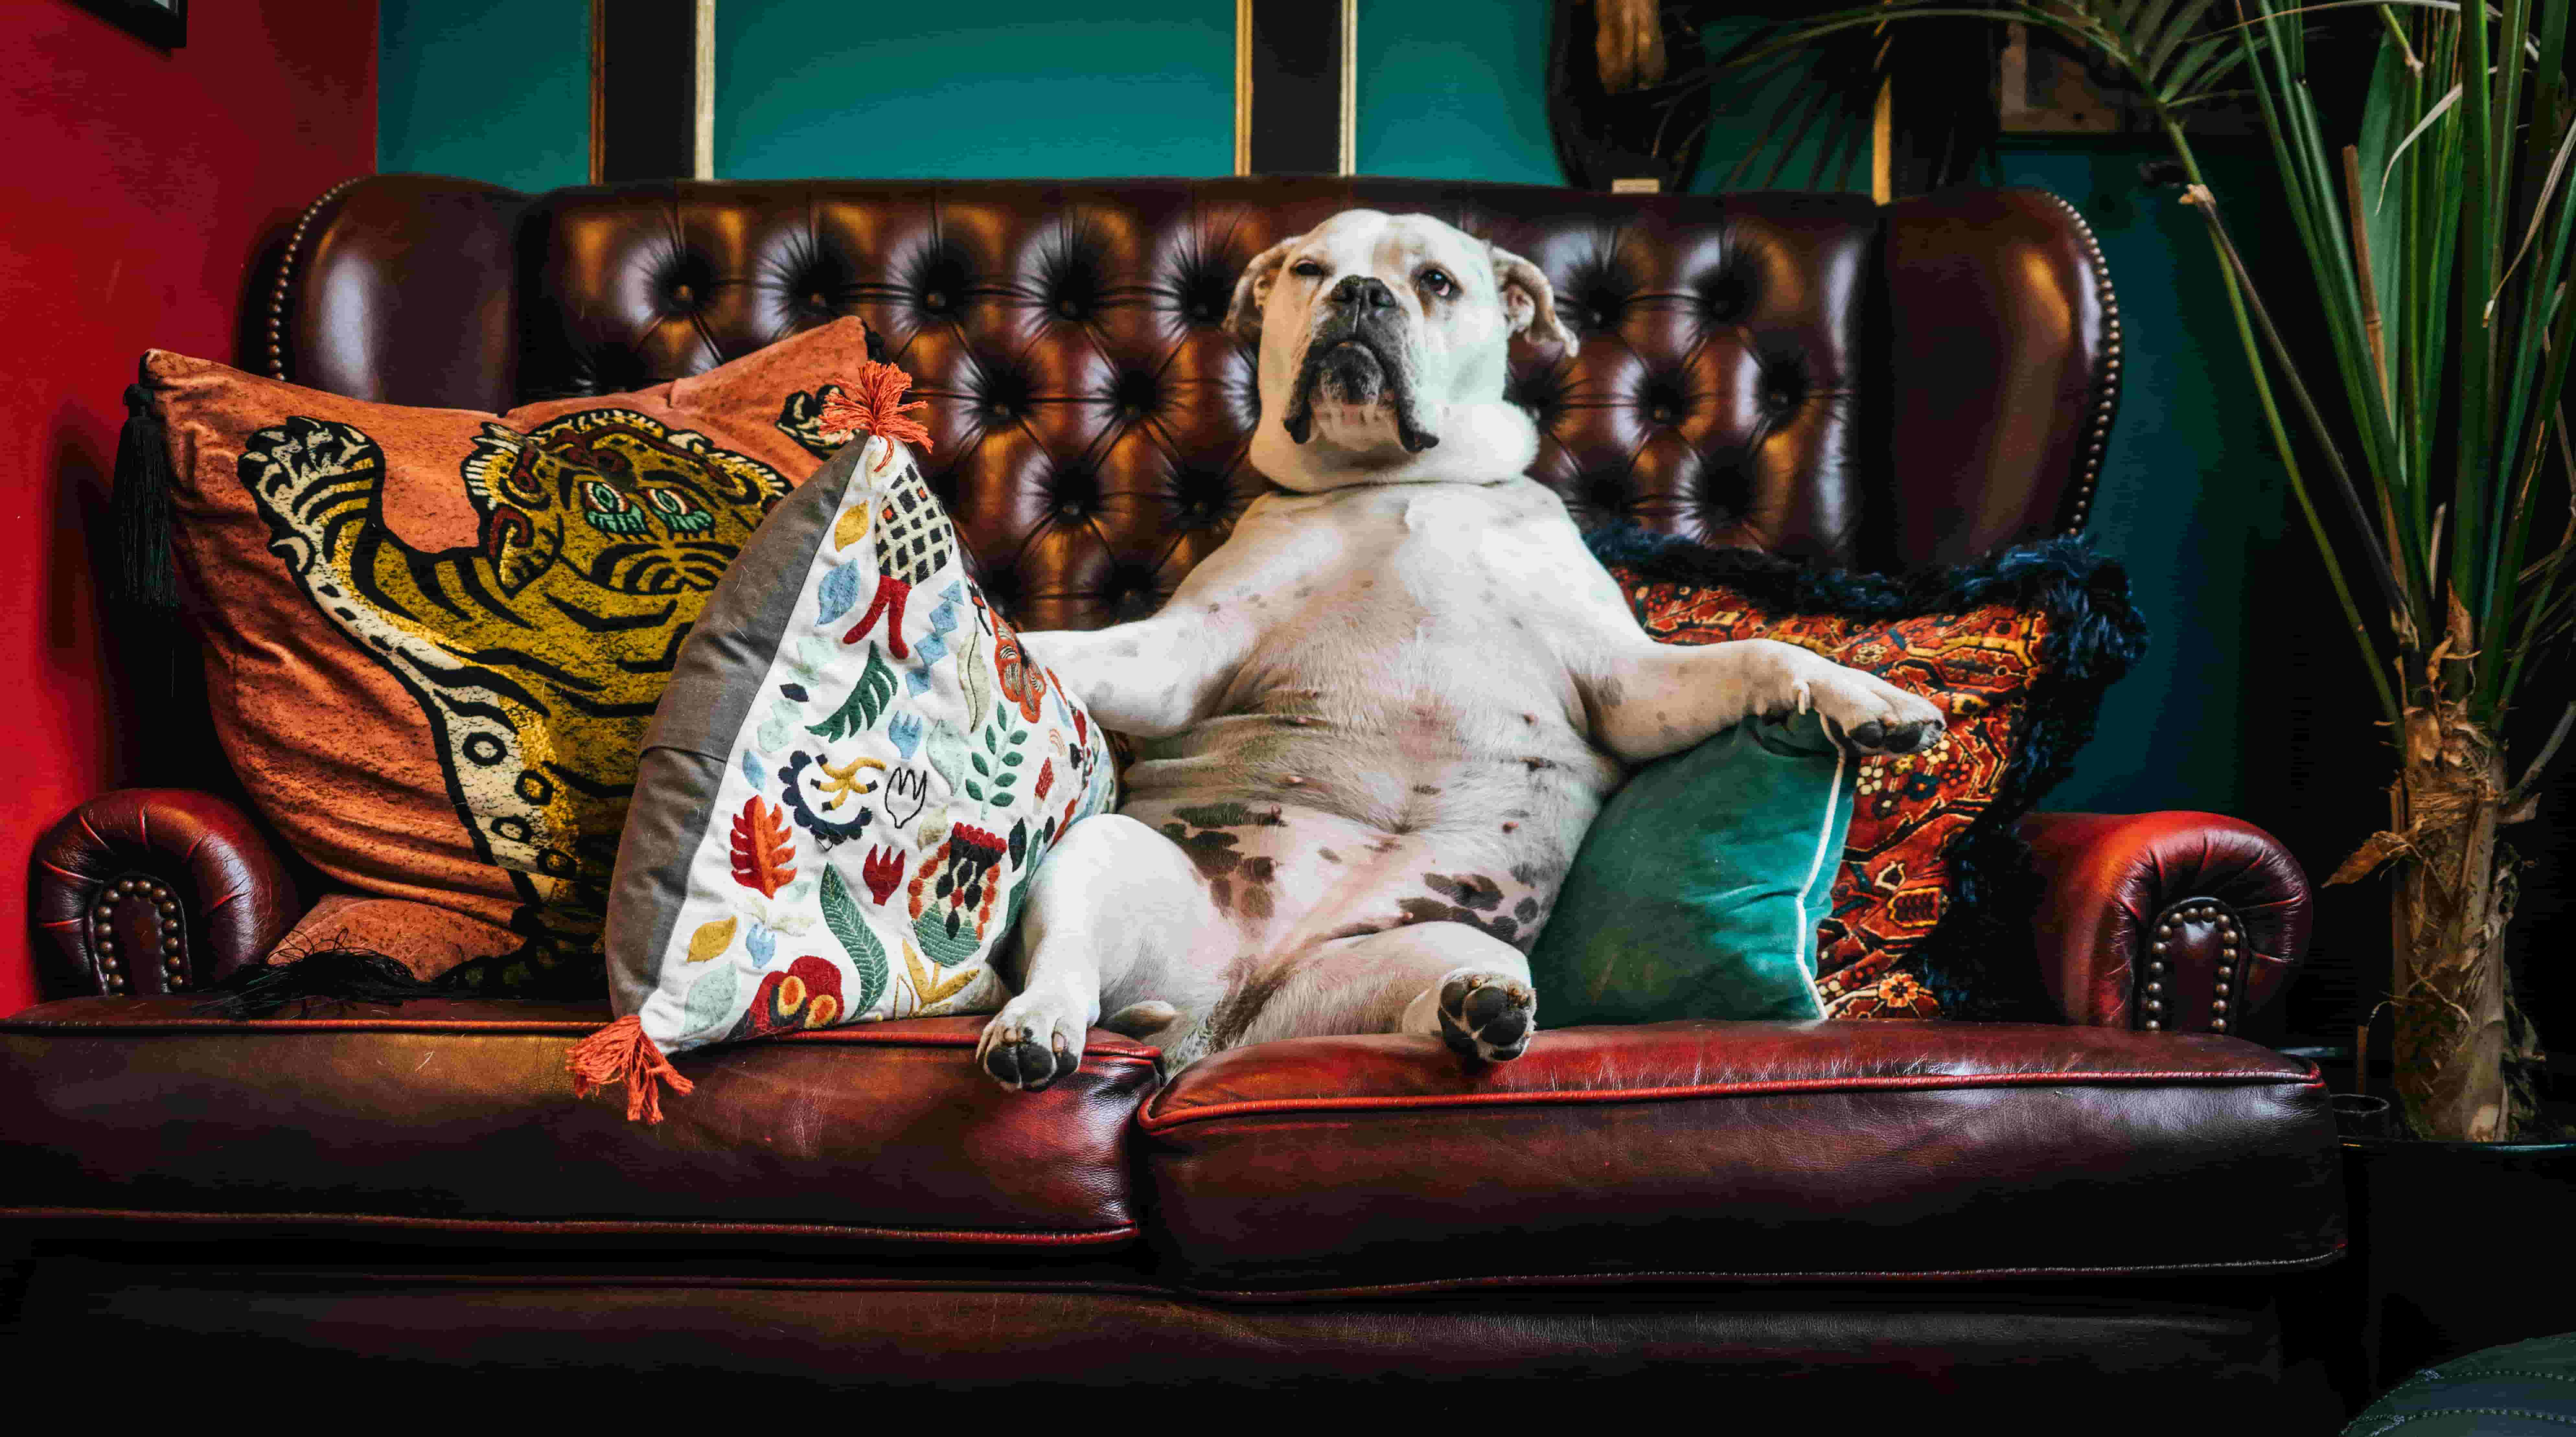 A dog lounges on a sofa